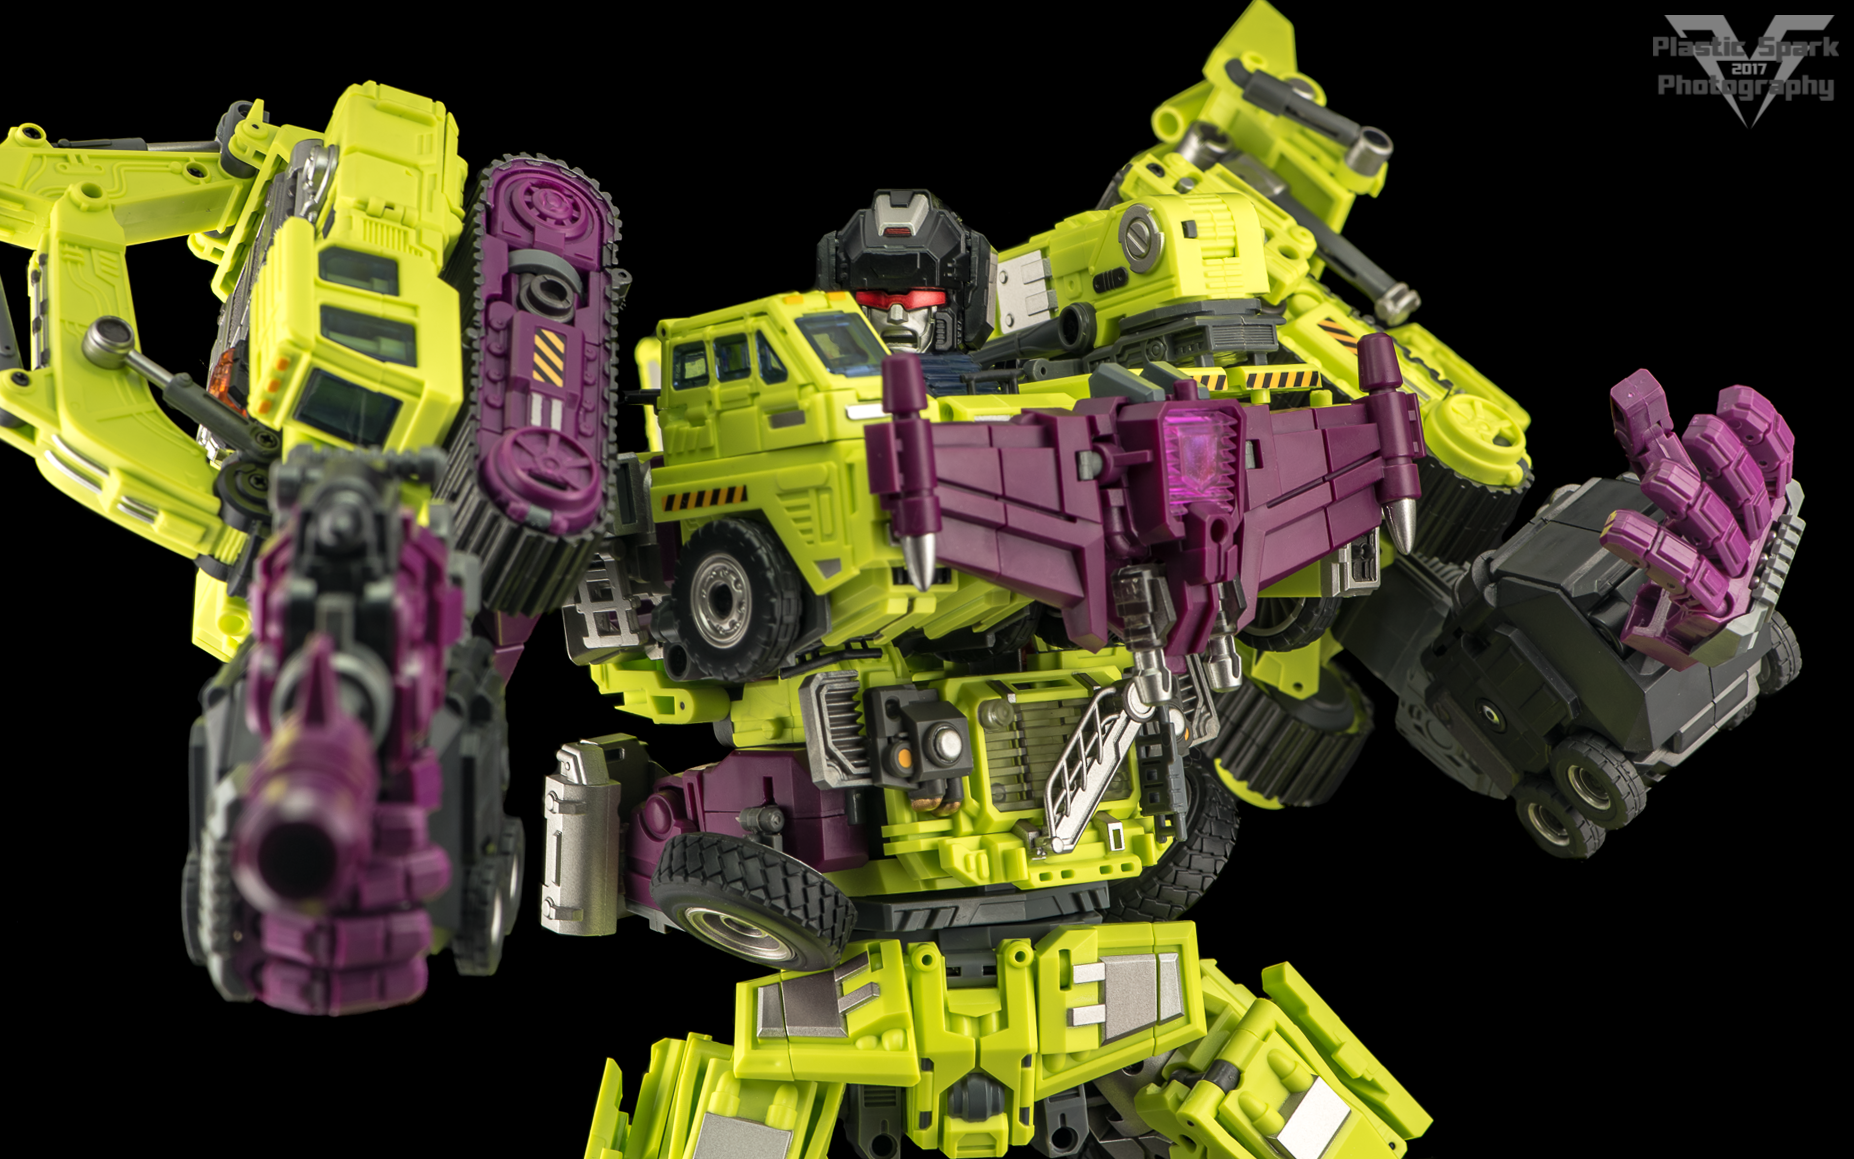 Generation-Toy-Gravity-Builder-(24-of-34).png